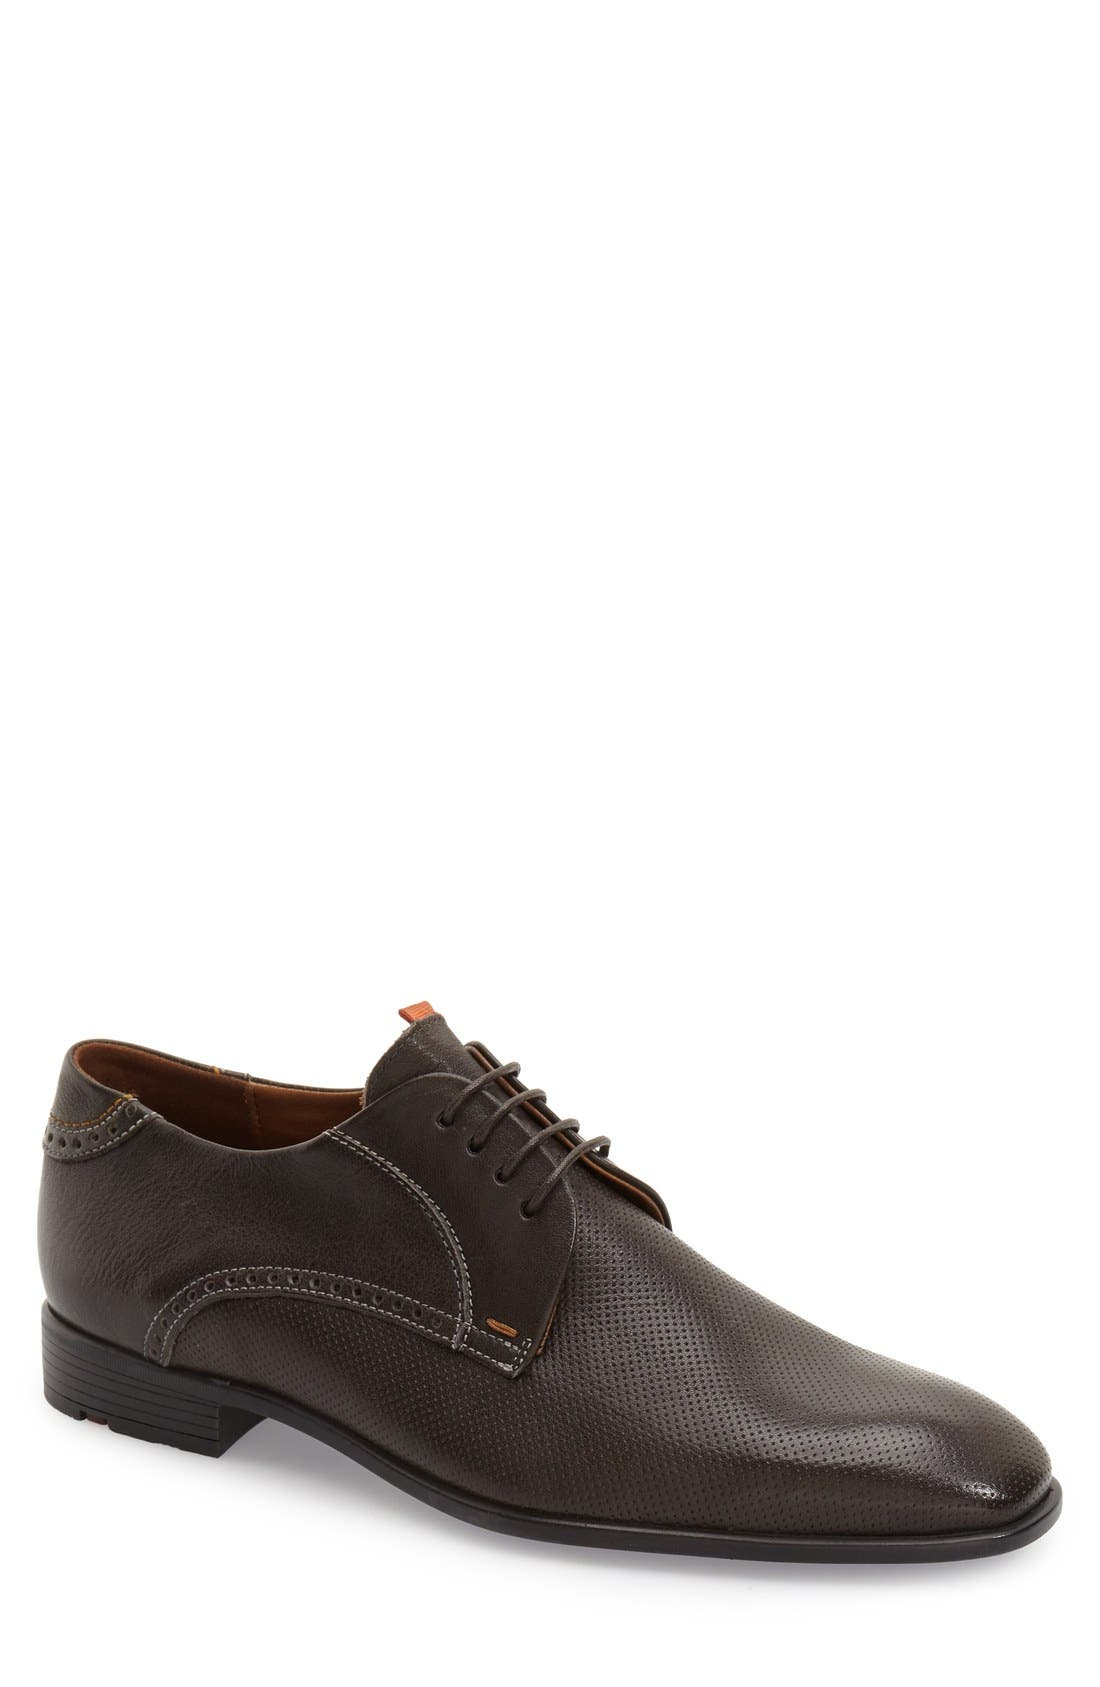 'Dello' Plain Toe Derby,                         Main,                         color,